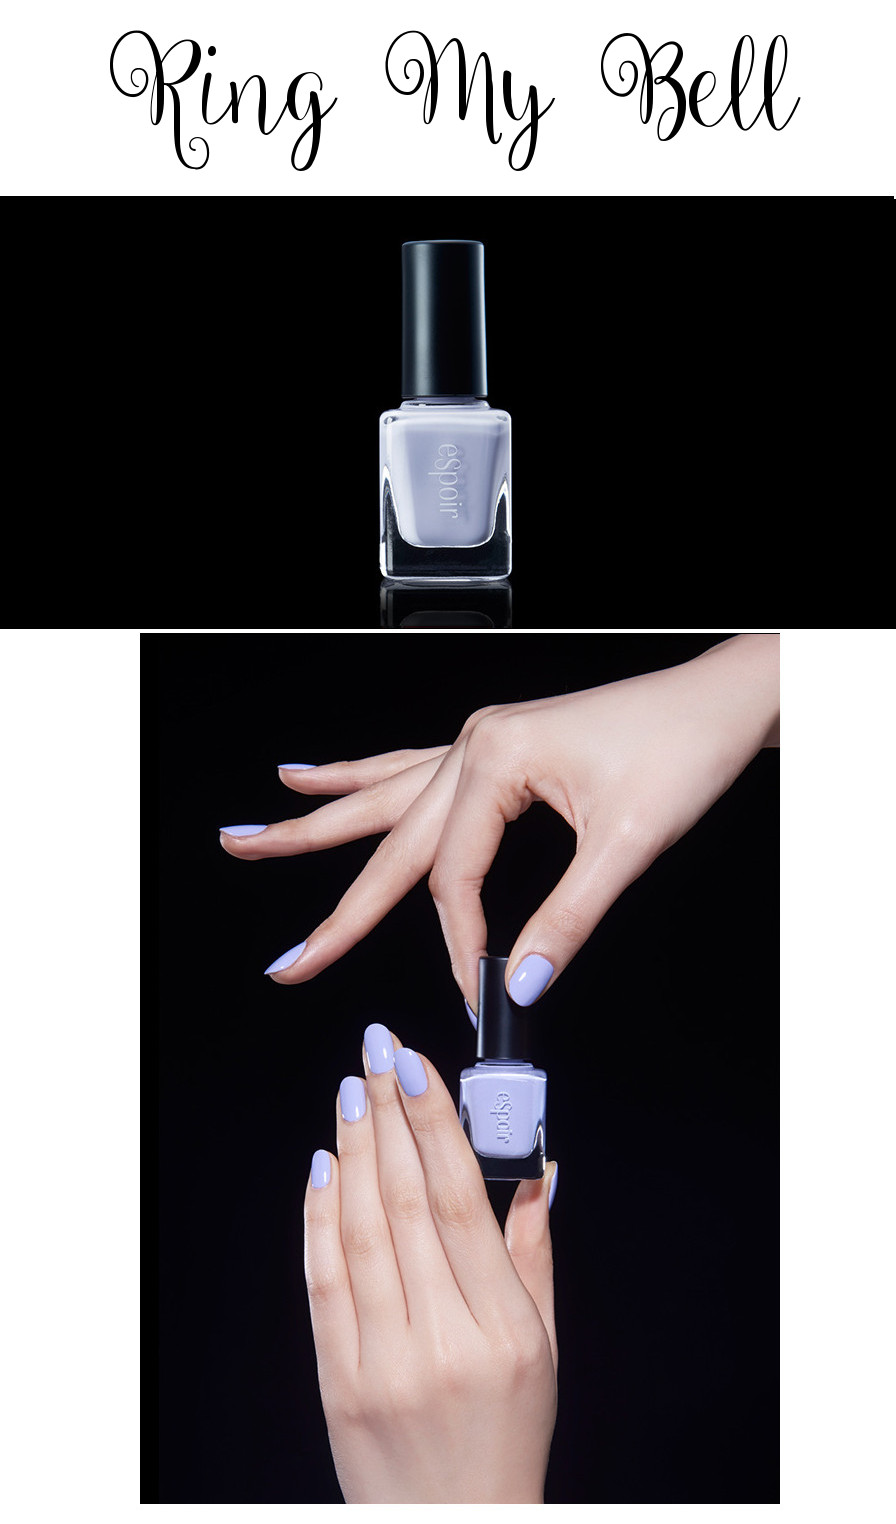 eSpoir 2016 Spring Collection Pinup Curler Fashion Nail Ring My Bell